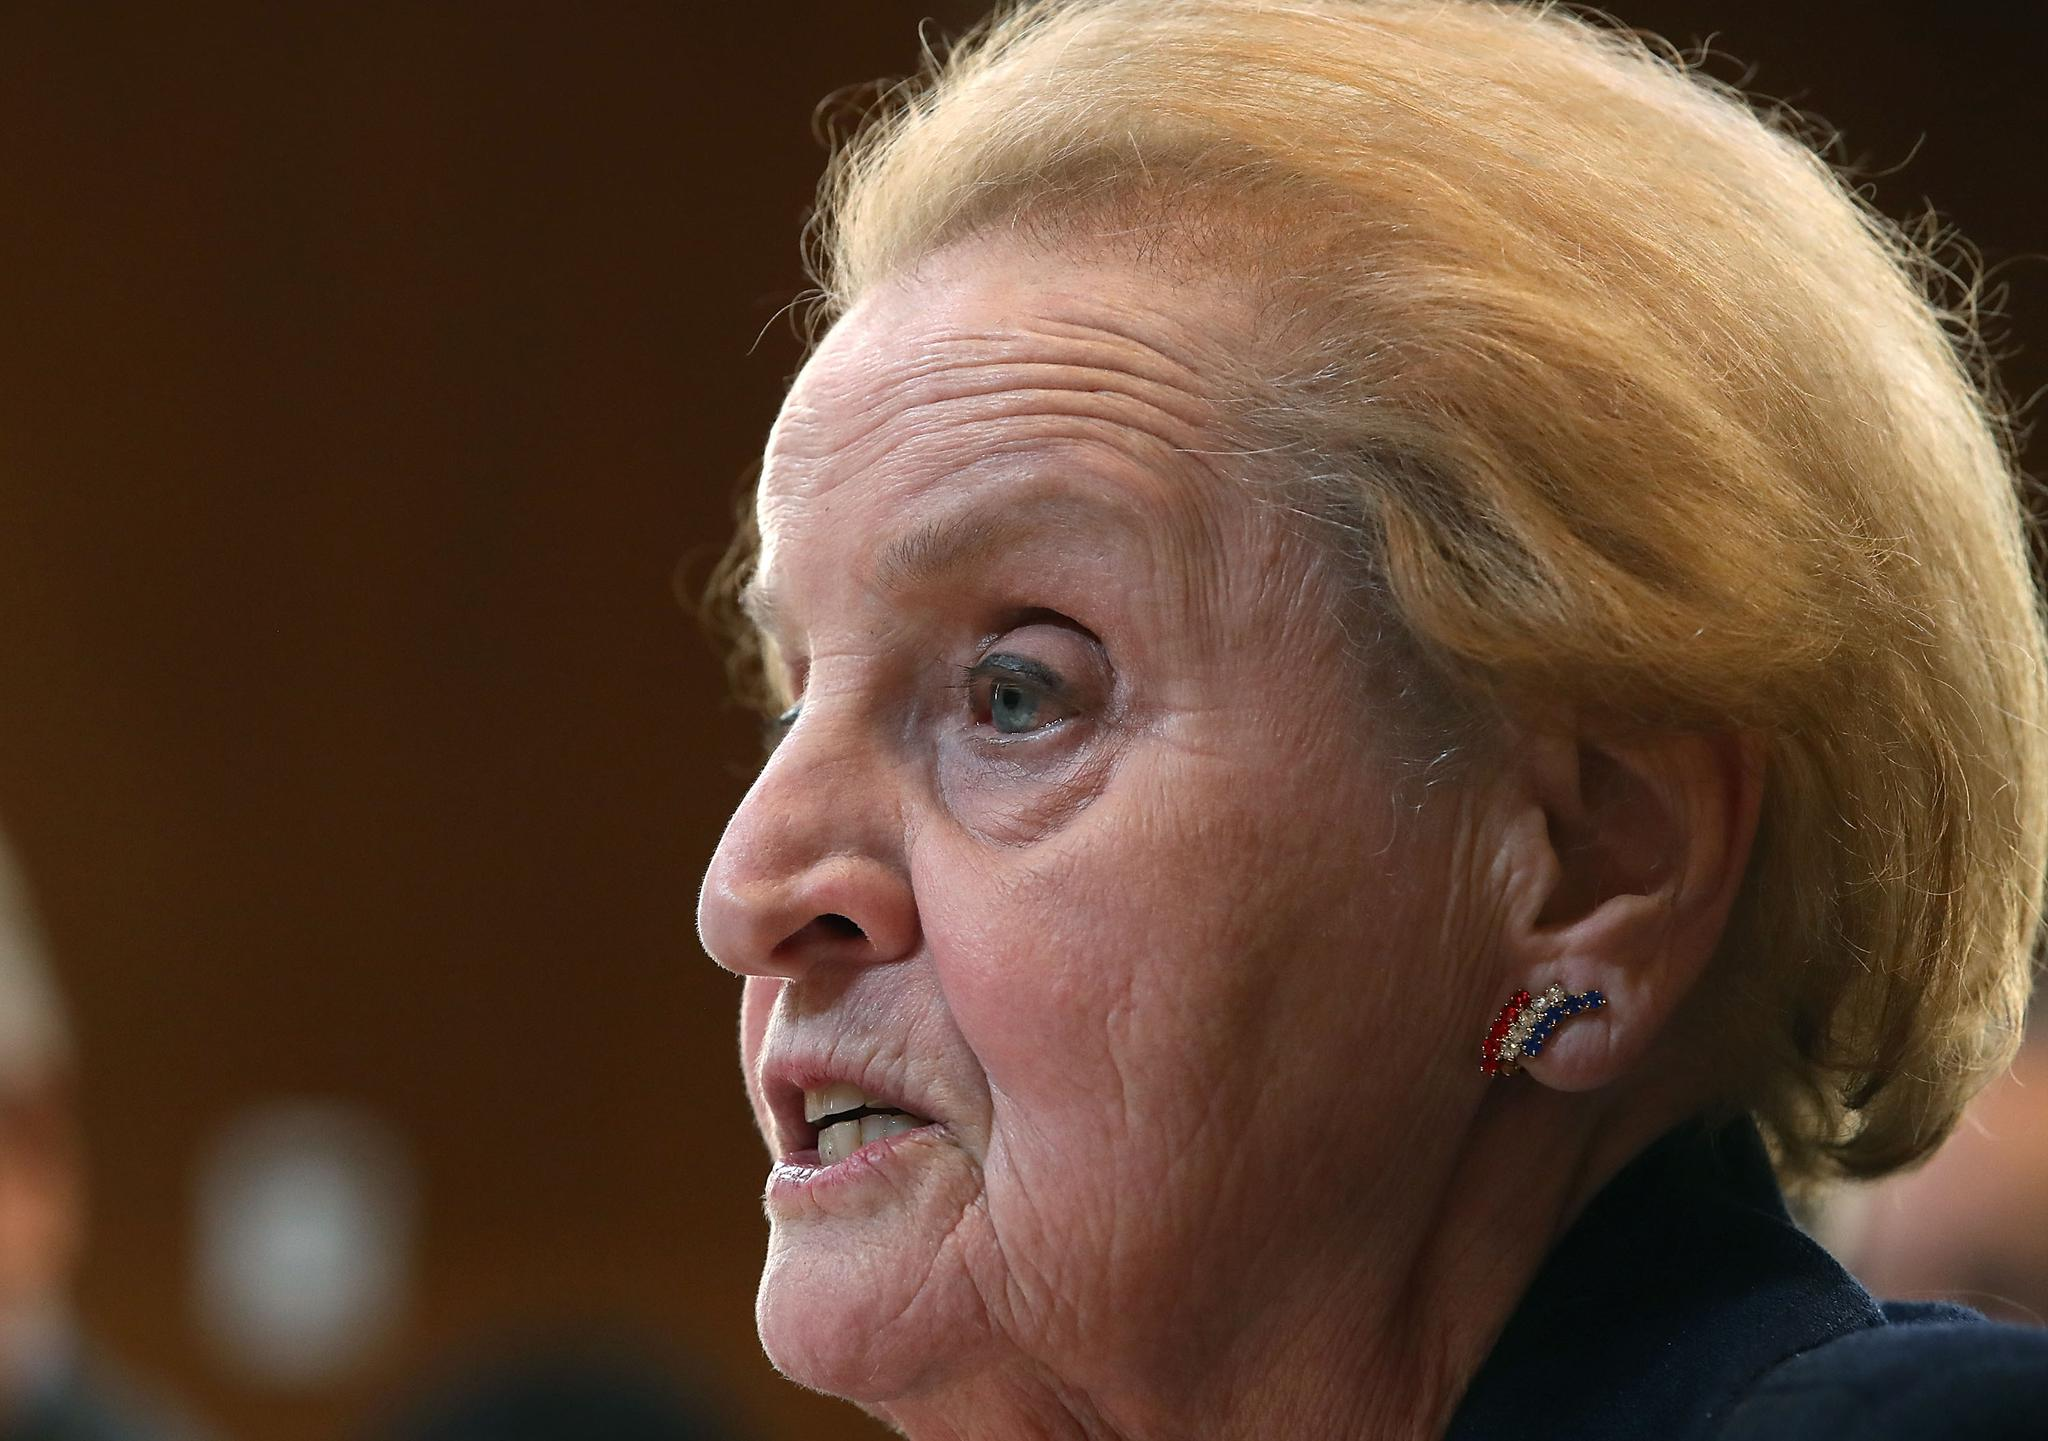 Former Secretary of State Madeline Albright testifies during a Senate Appropriations Committee hearing on Capitol Hill, on May 9, 2017 in Washington, D.C. The committee was hearing testimony on 'United States Democracy Assistance.'